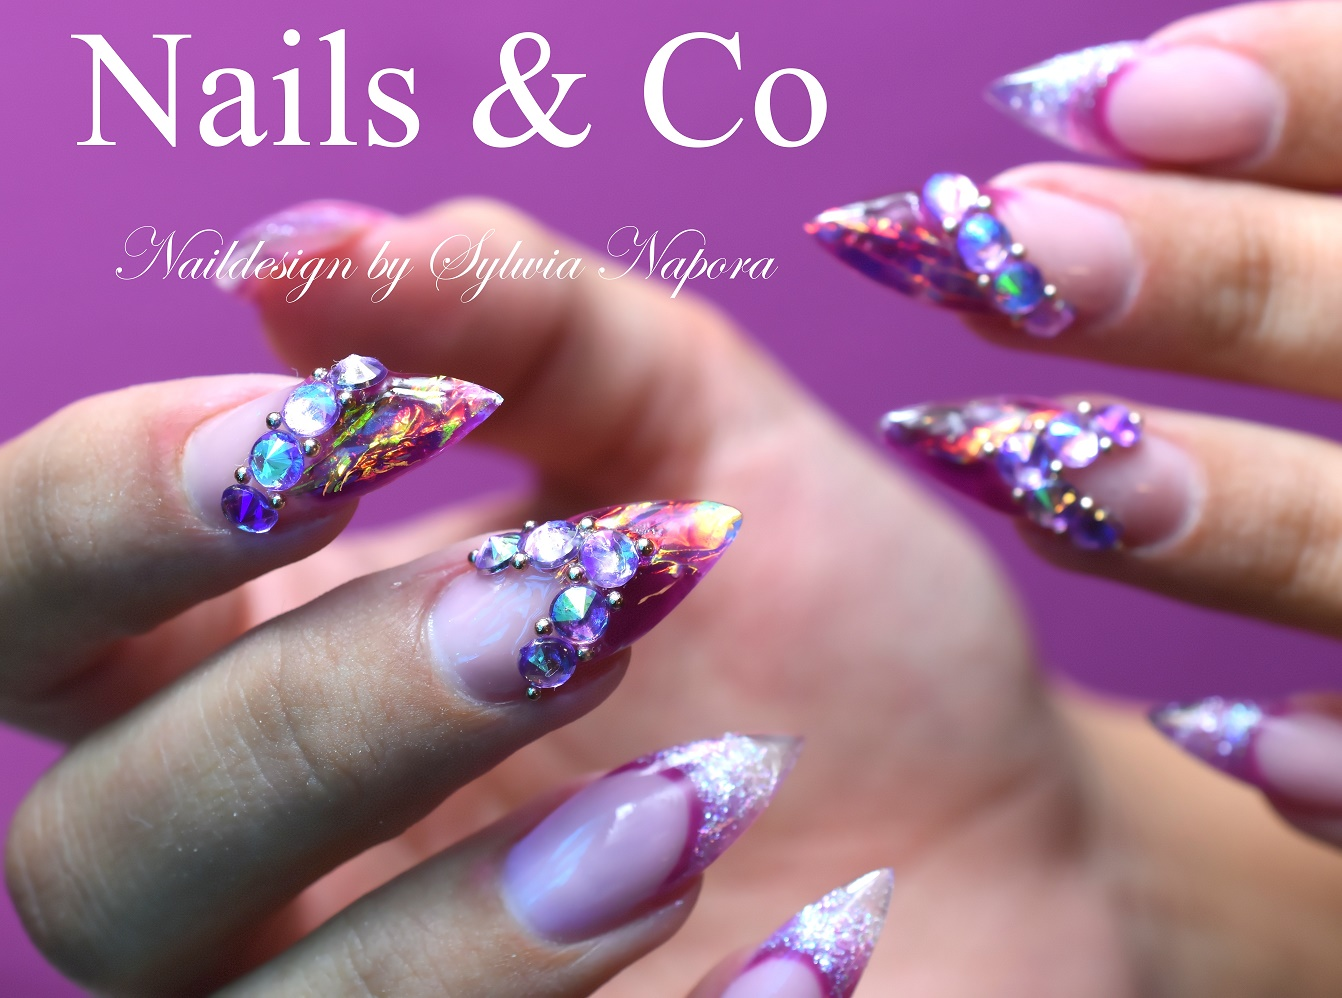 Fire & Ice Nails- das ultimative Nail Art Design 2017 – Nail Art & Co